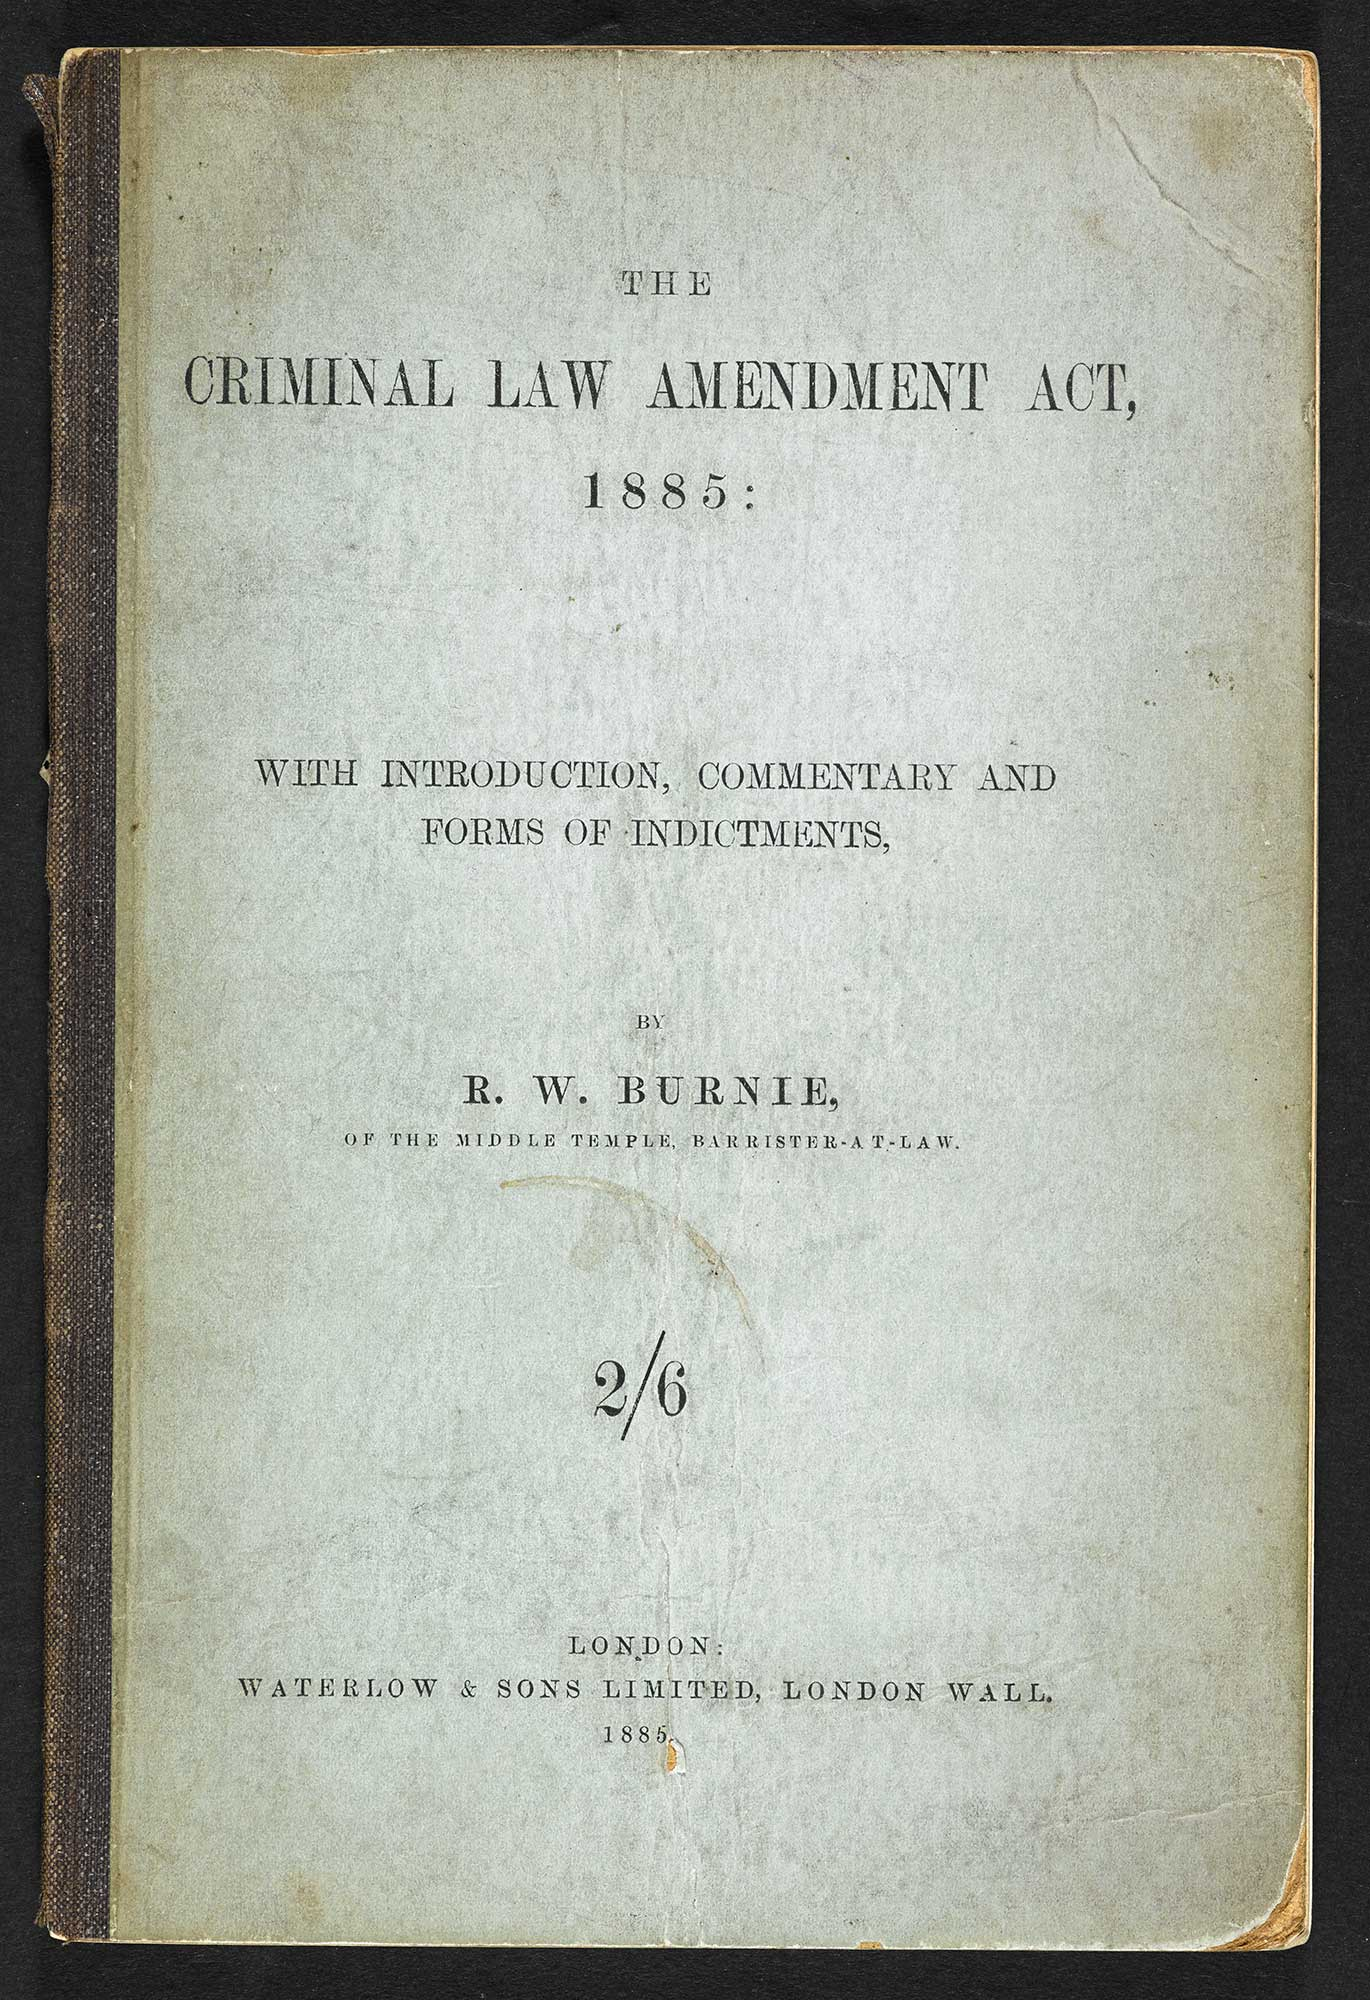 The Criminal Law Amendment Act, 1885 by R.W.Burne (c) British Library Board